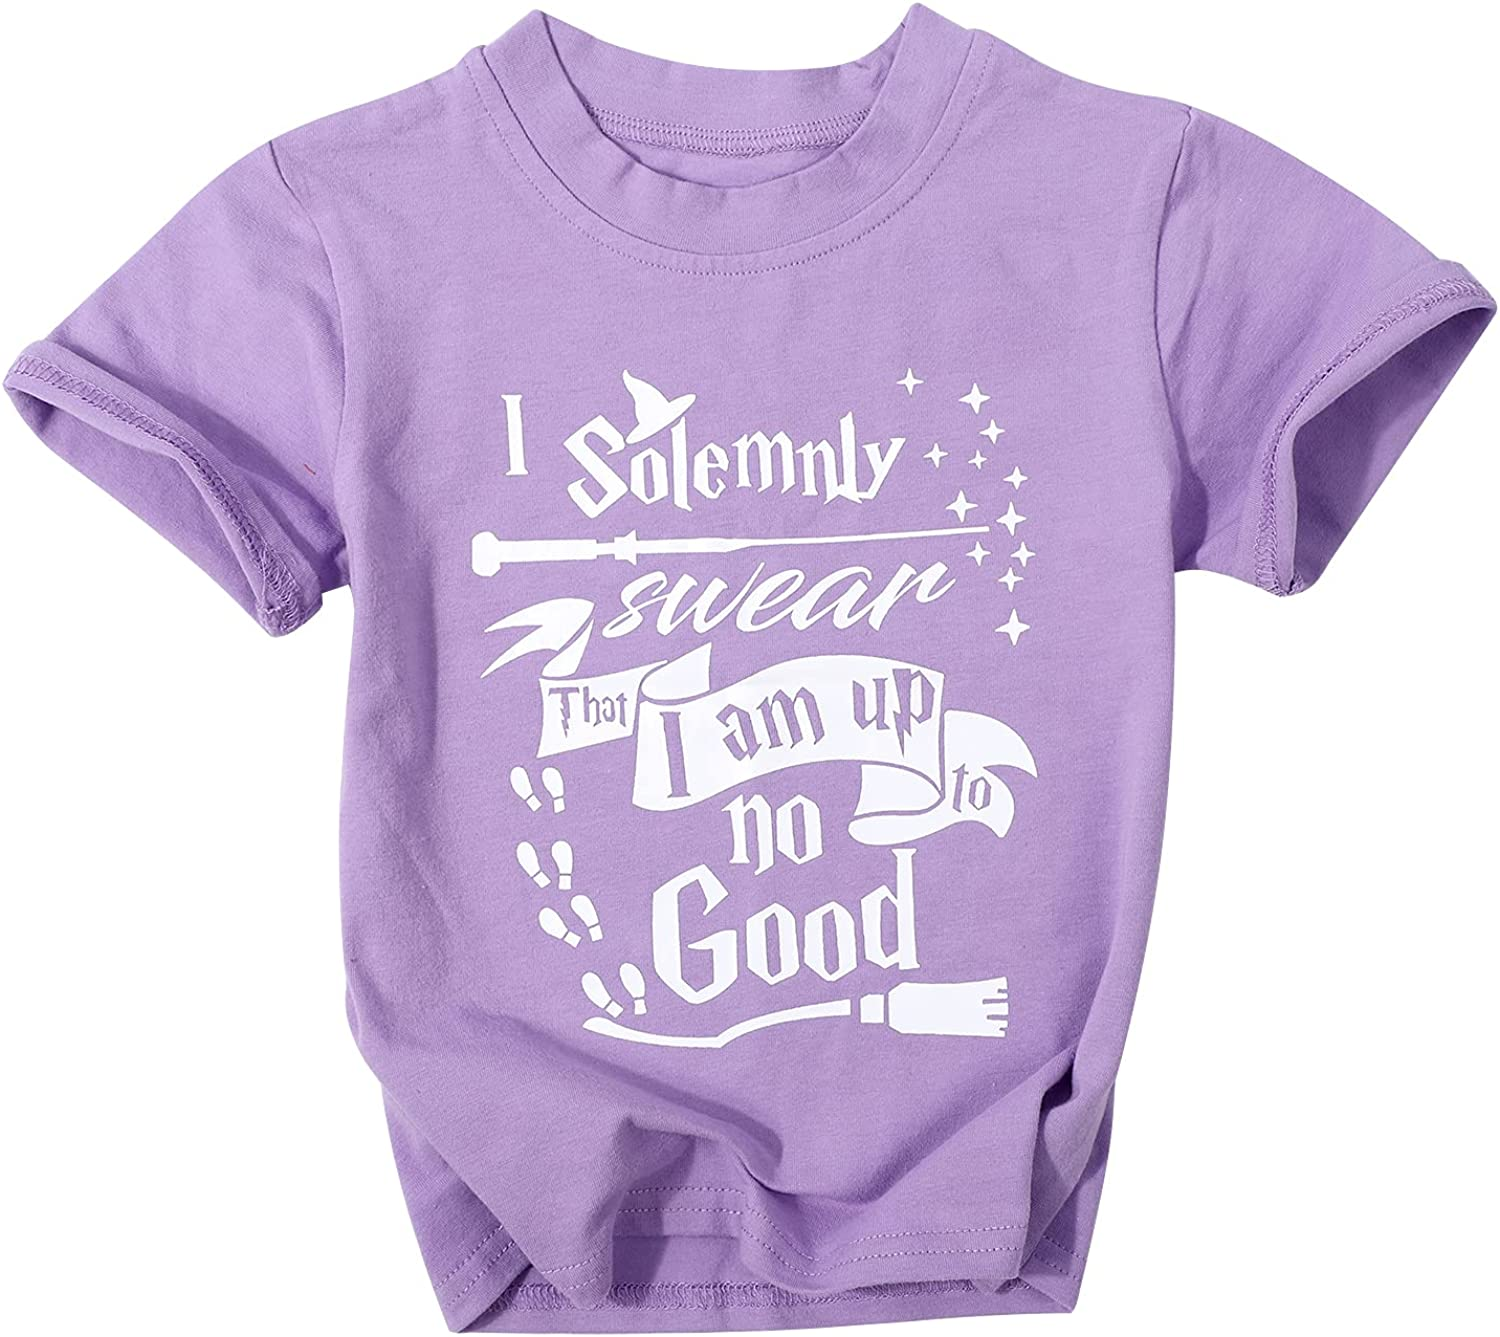 Toddler Boys Girls I Solemnly Swear That I Am Up to No Good T-Shirt Soft Short Sleeve Tee Tops